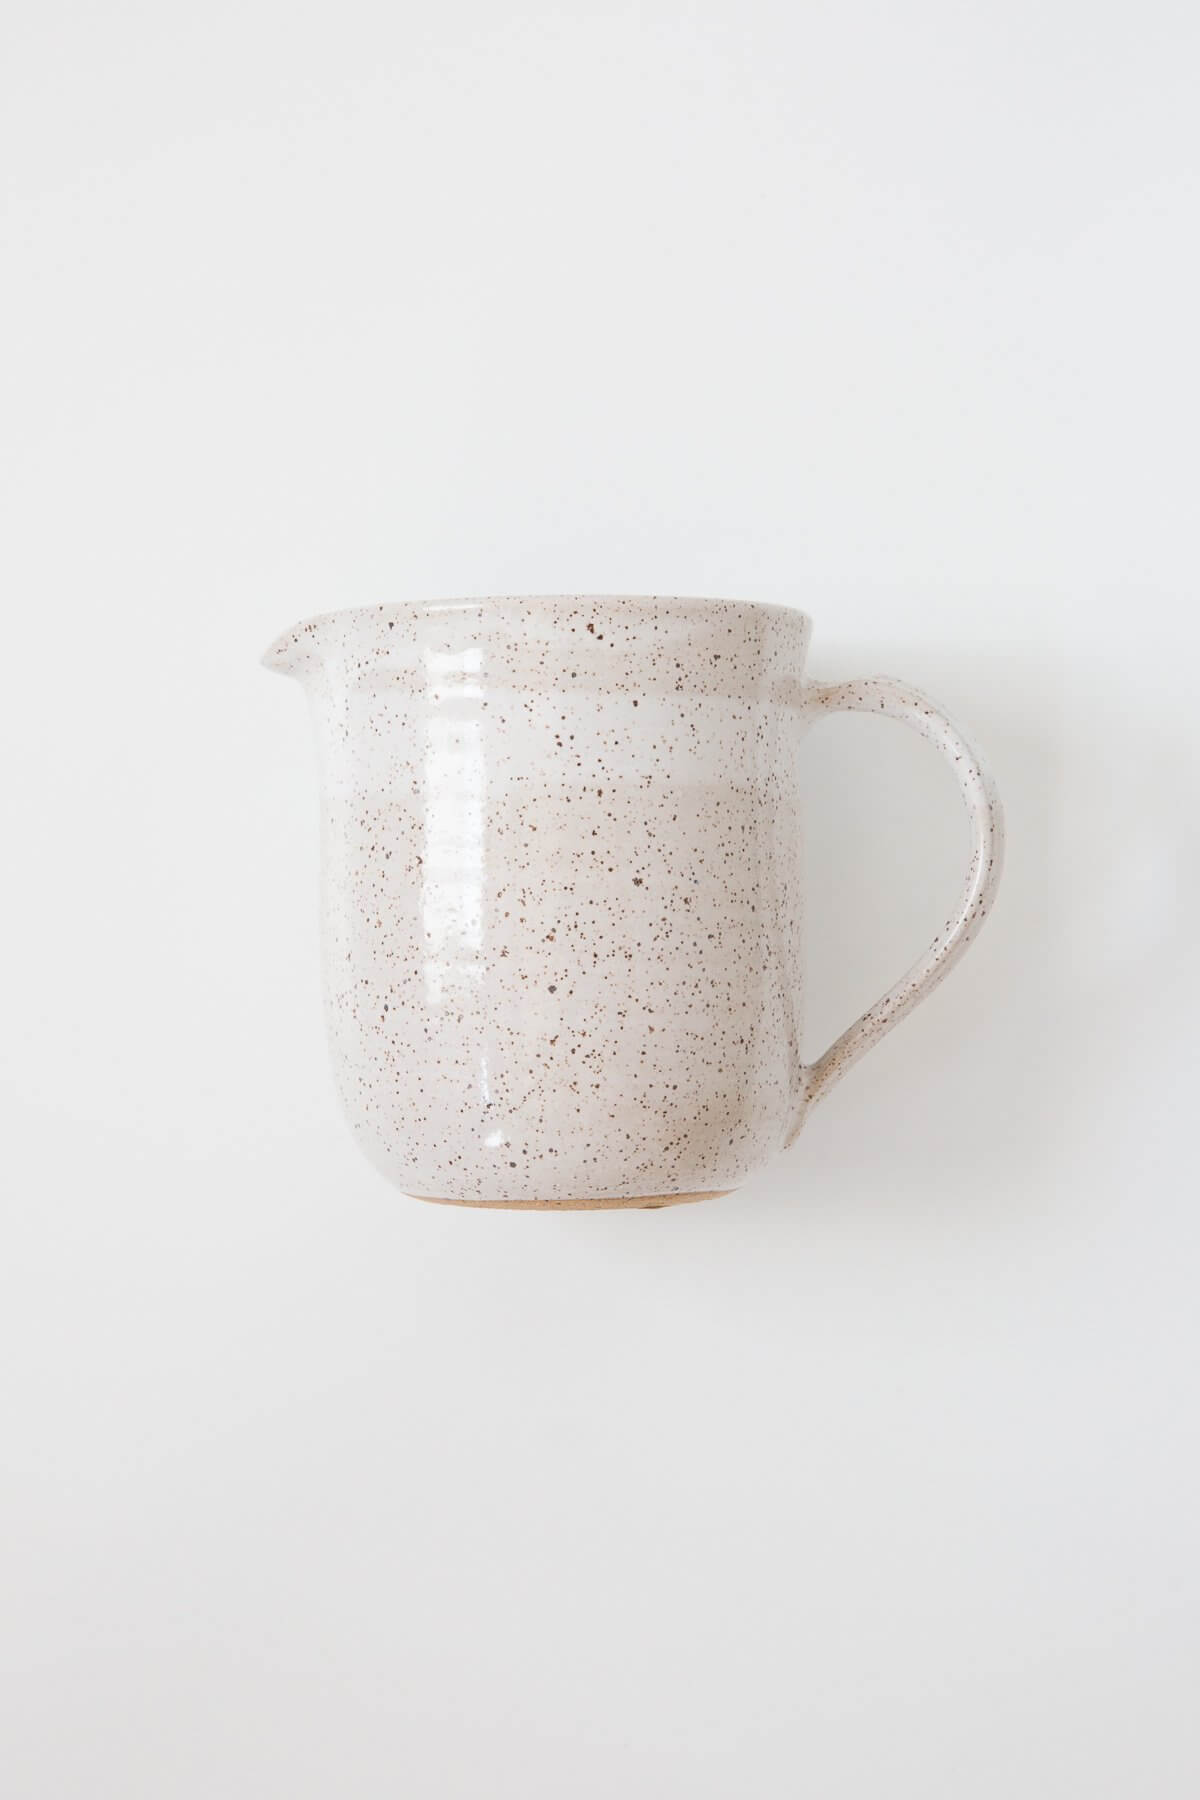 Rachael Pots Small Speckled Clay Pitcher